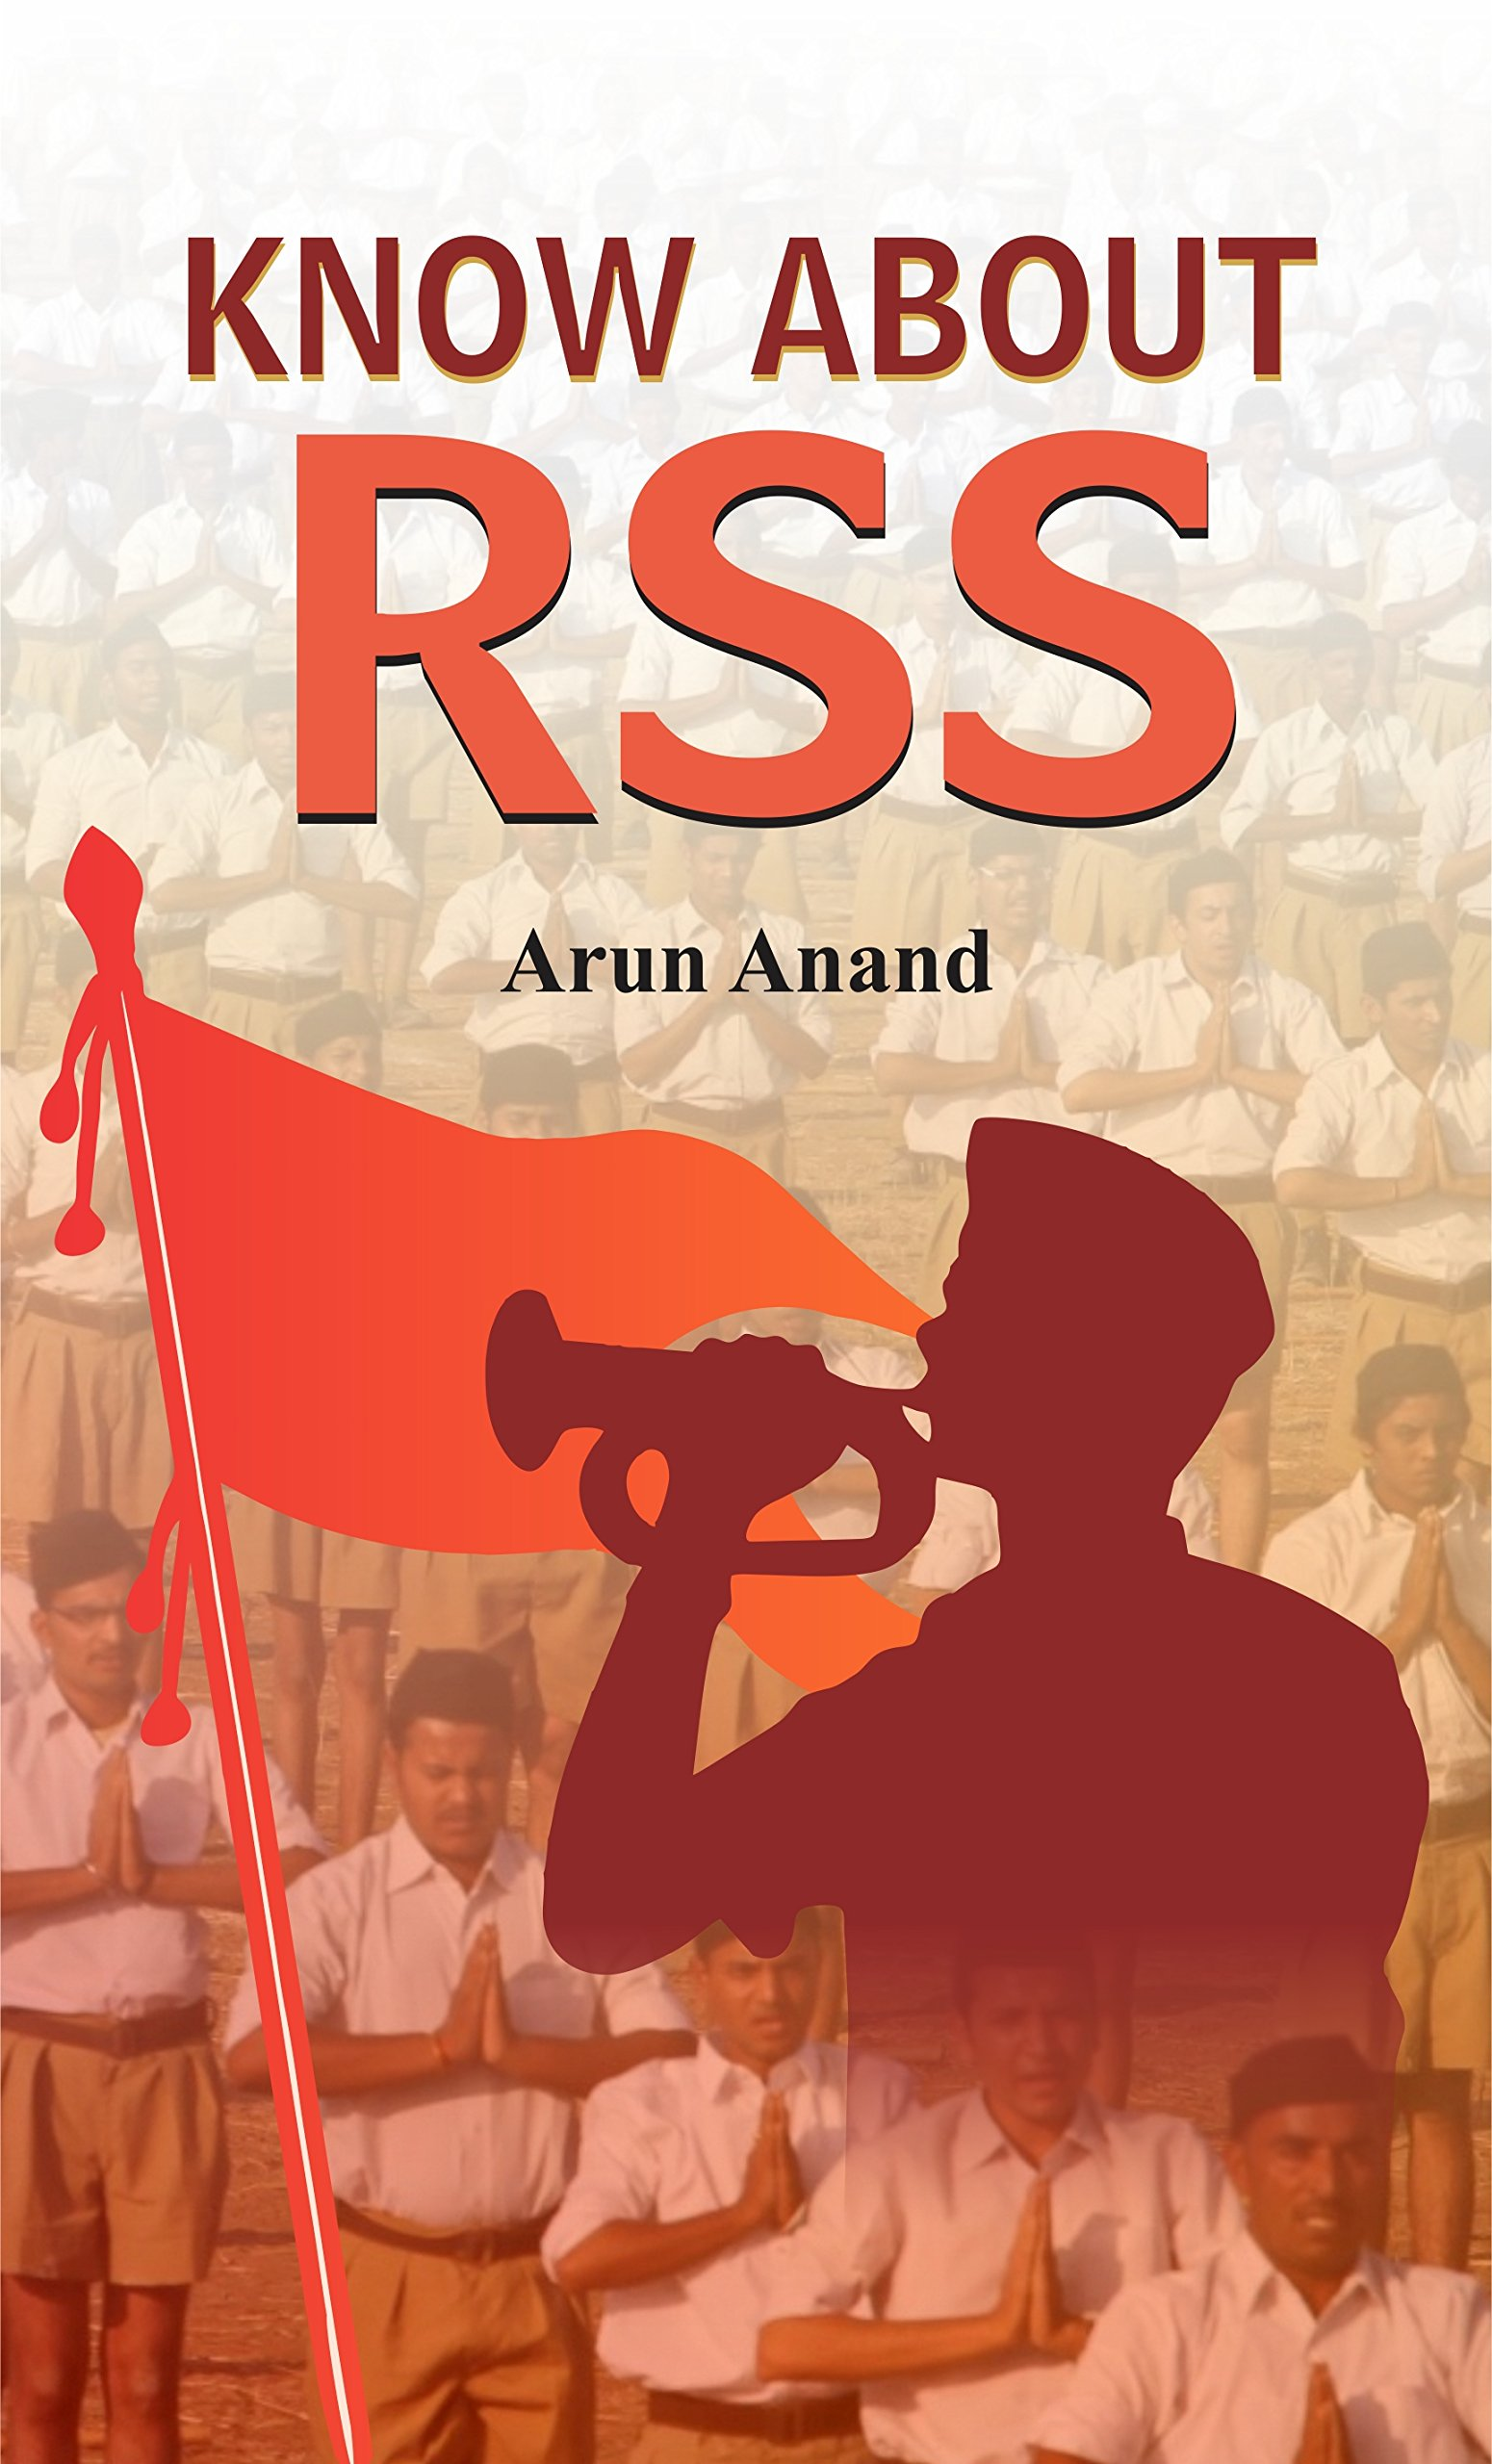 Buy Know About RSS Book Online at Low Prices in India | Know About RSS  Reviews & Ratings - Amazon.in